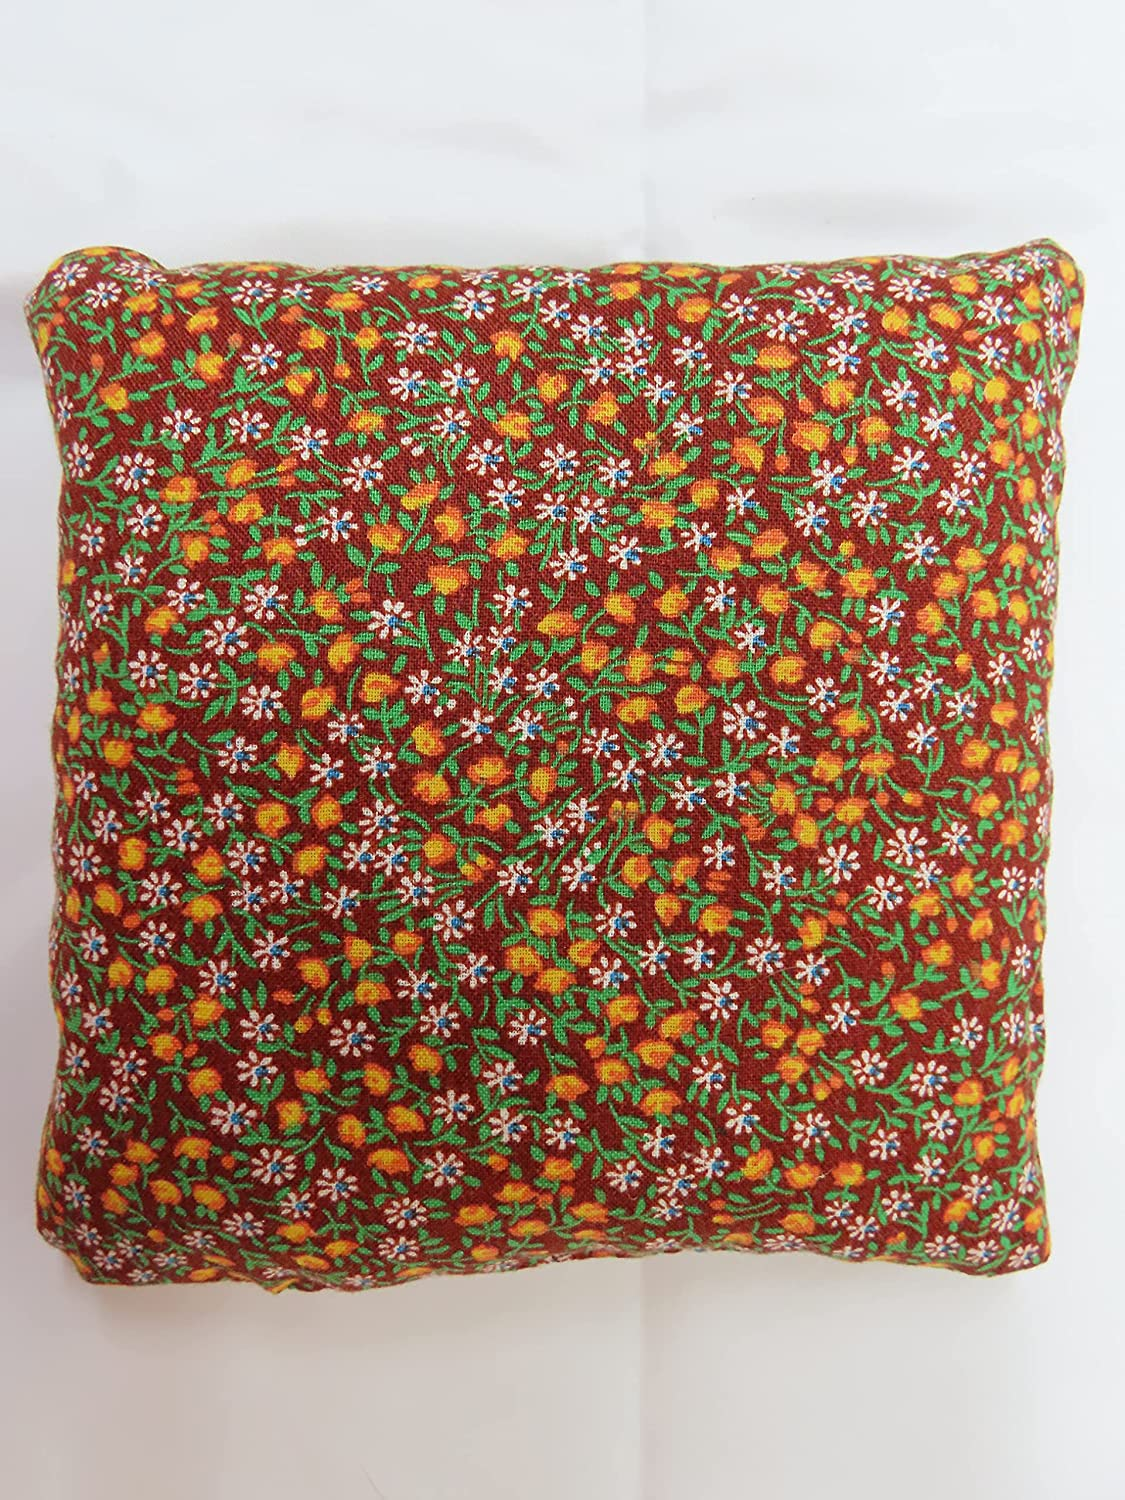 Translated Floral Balsam Fir price Pillow Filled